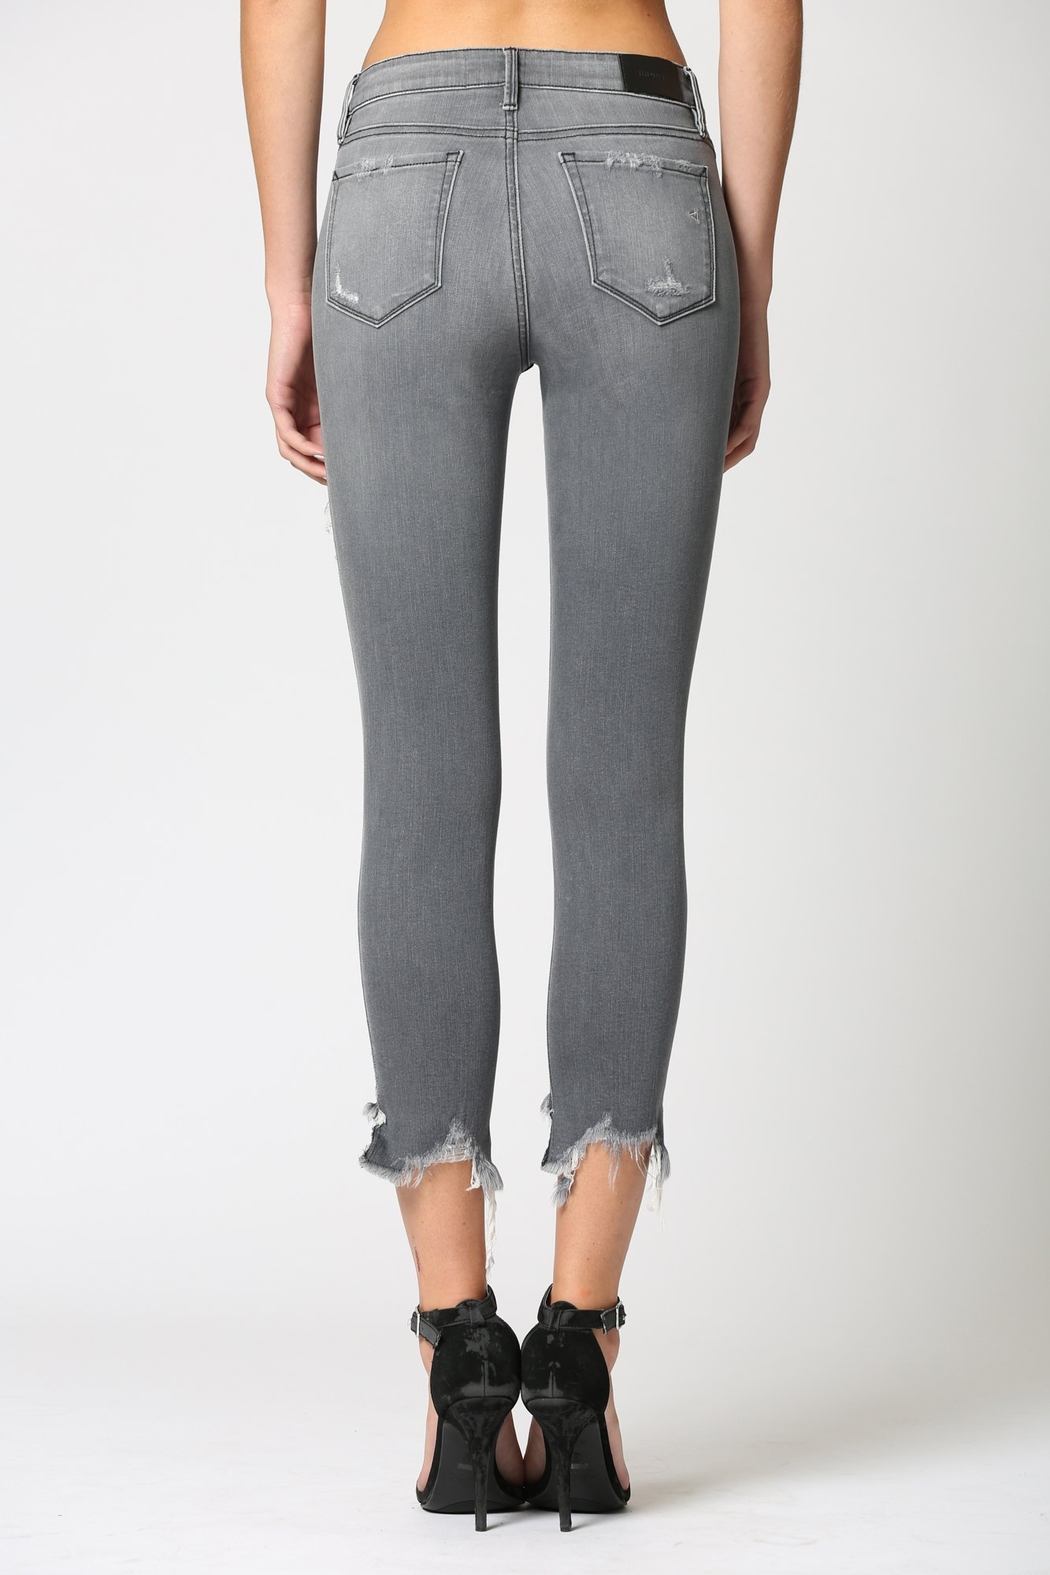 Hidden Jeans Amelia Mid Rise Skinny - Side Cropped Image